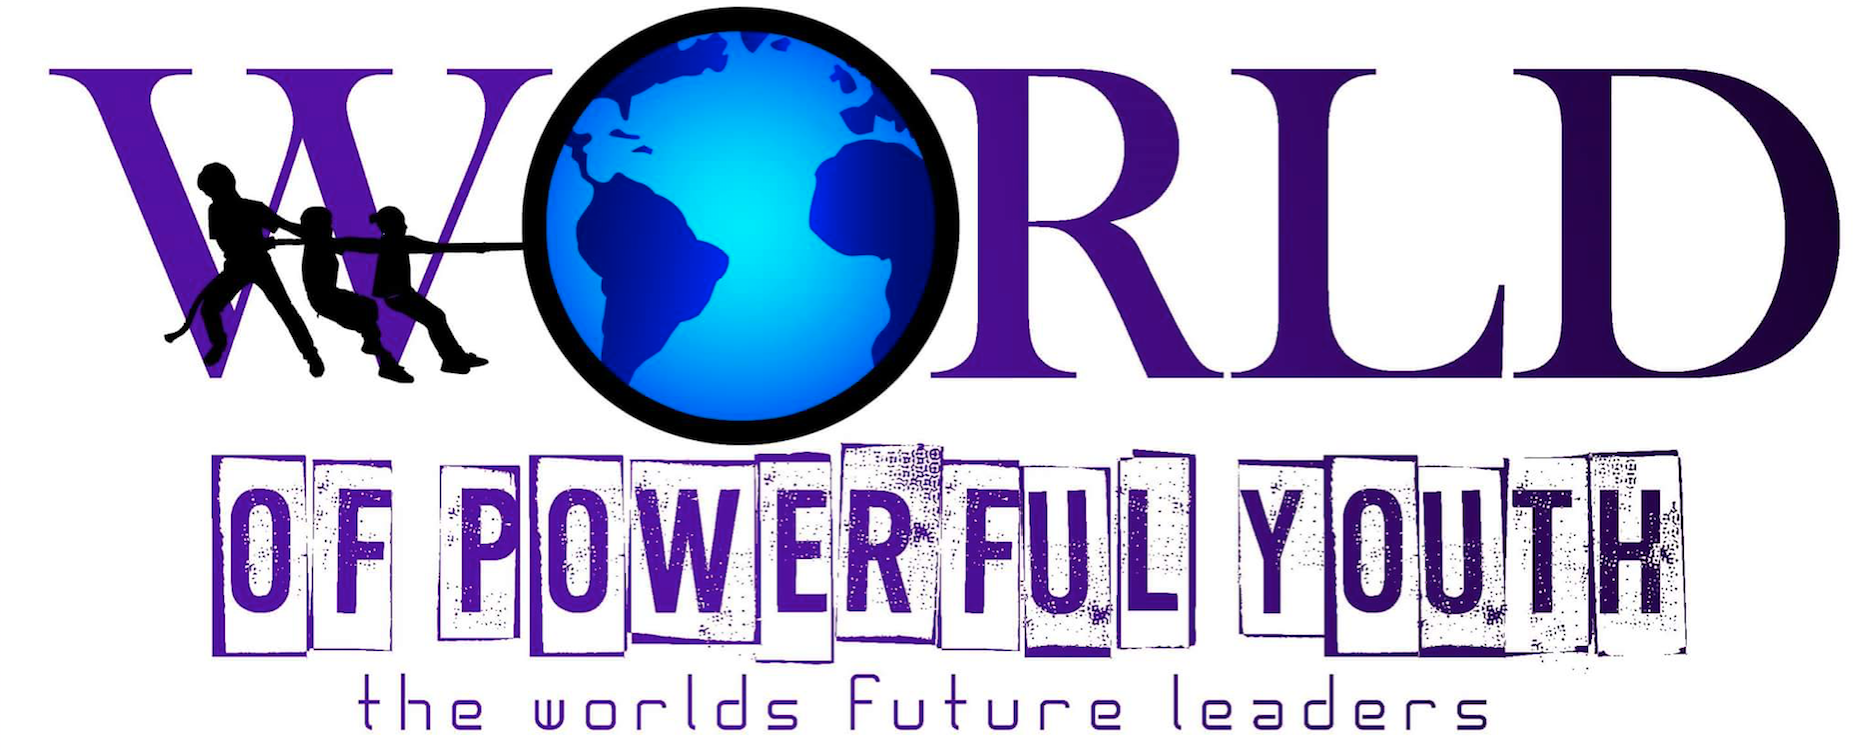 World of Powerful Youth